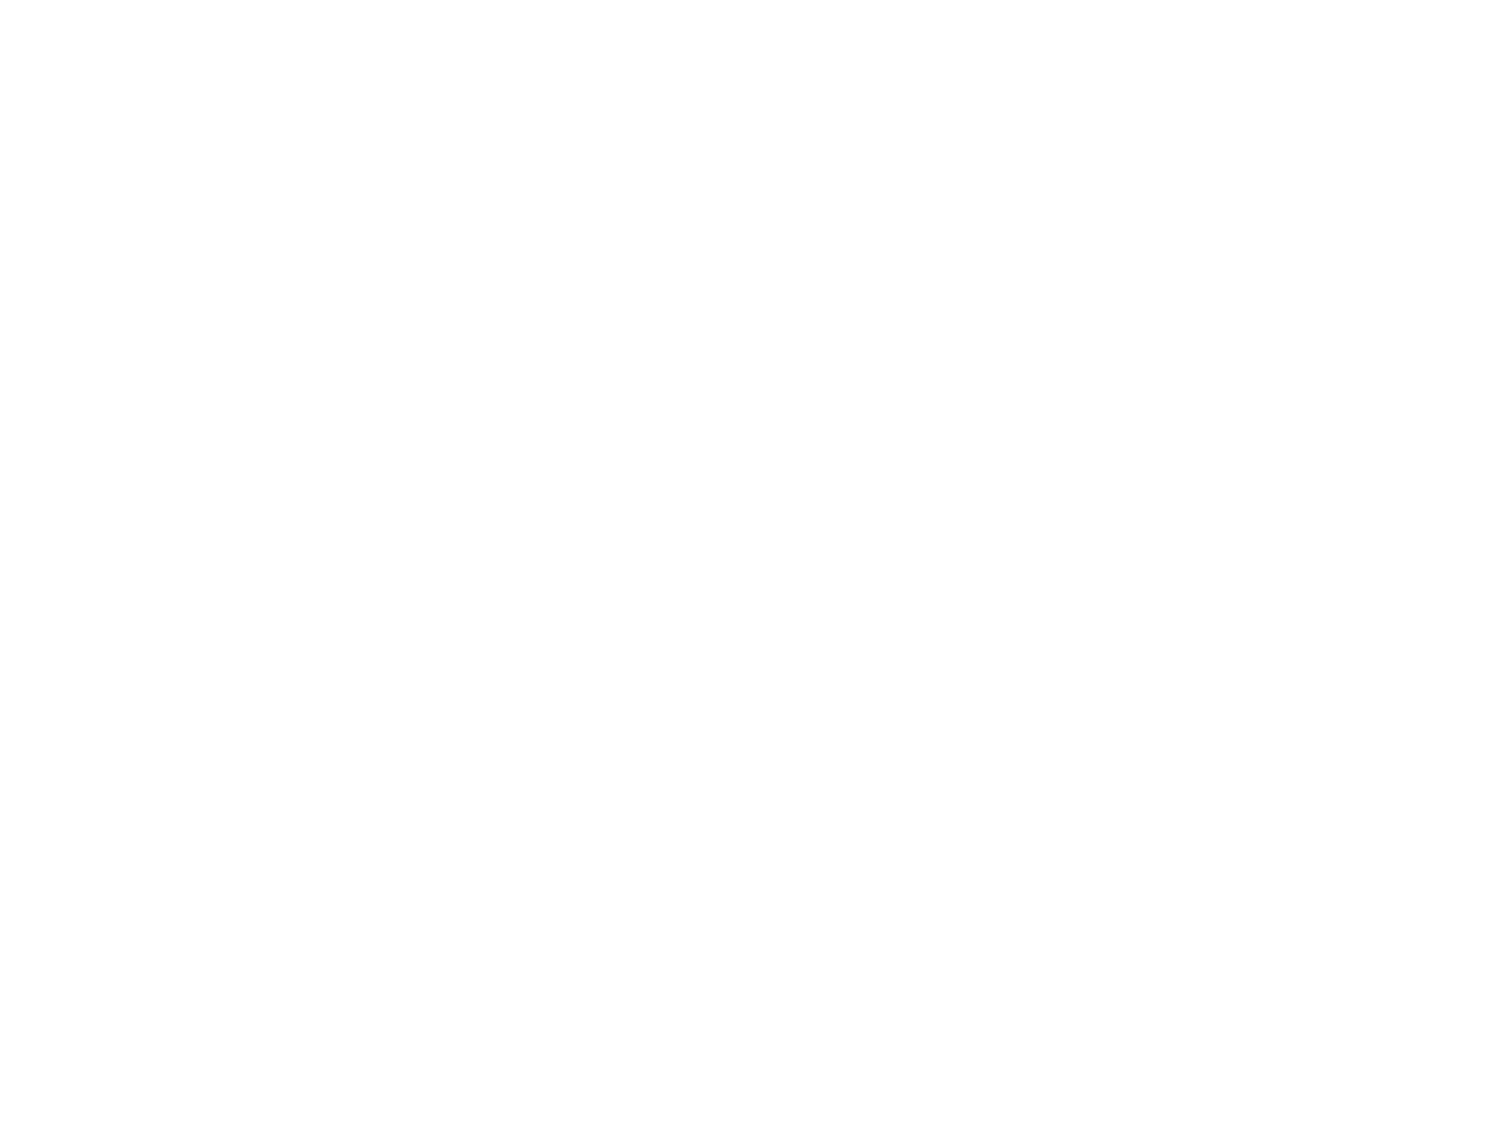 Zach Ashcraft - DFW Wedding & Portrait Photographer